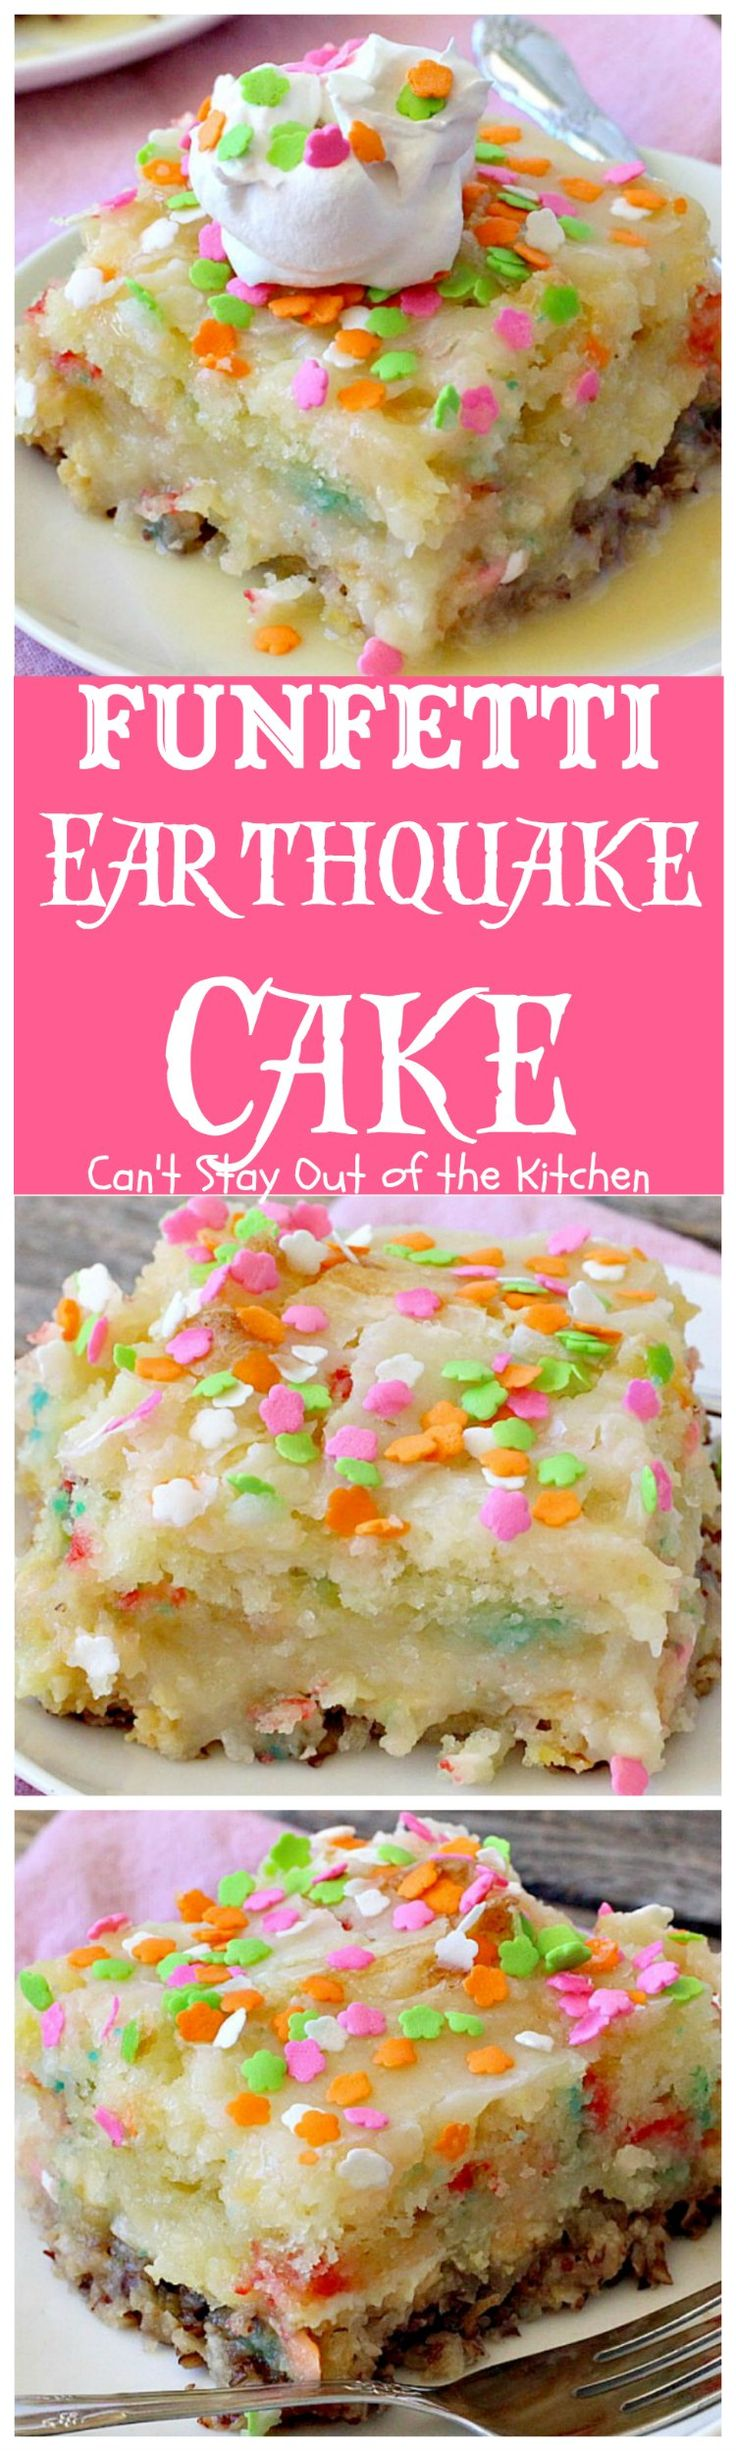 Funfetti Earthquake Cake | Can't Stay Out of the Kitchen | this is the perfect #cake for #birthdays or special occasions. #Creamcheese icing bakes into the cake causing volcano-like craters & an earthquake! #dessert #funfetti